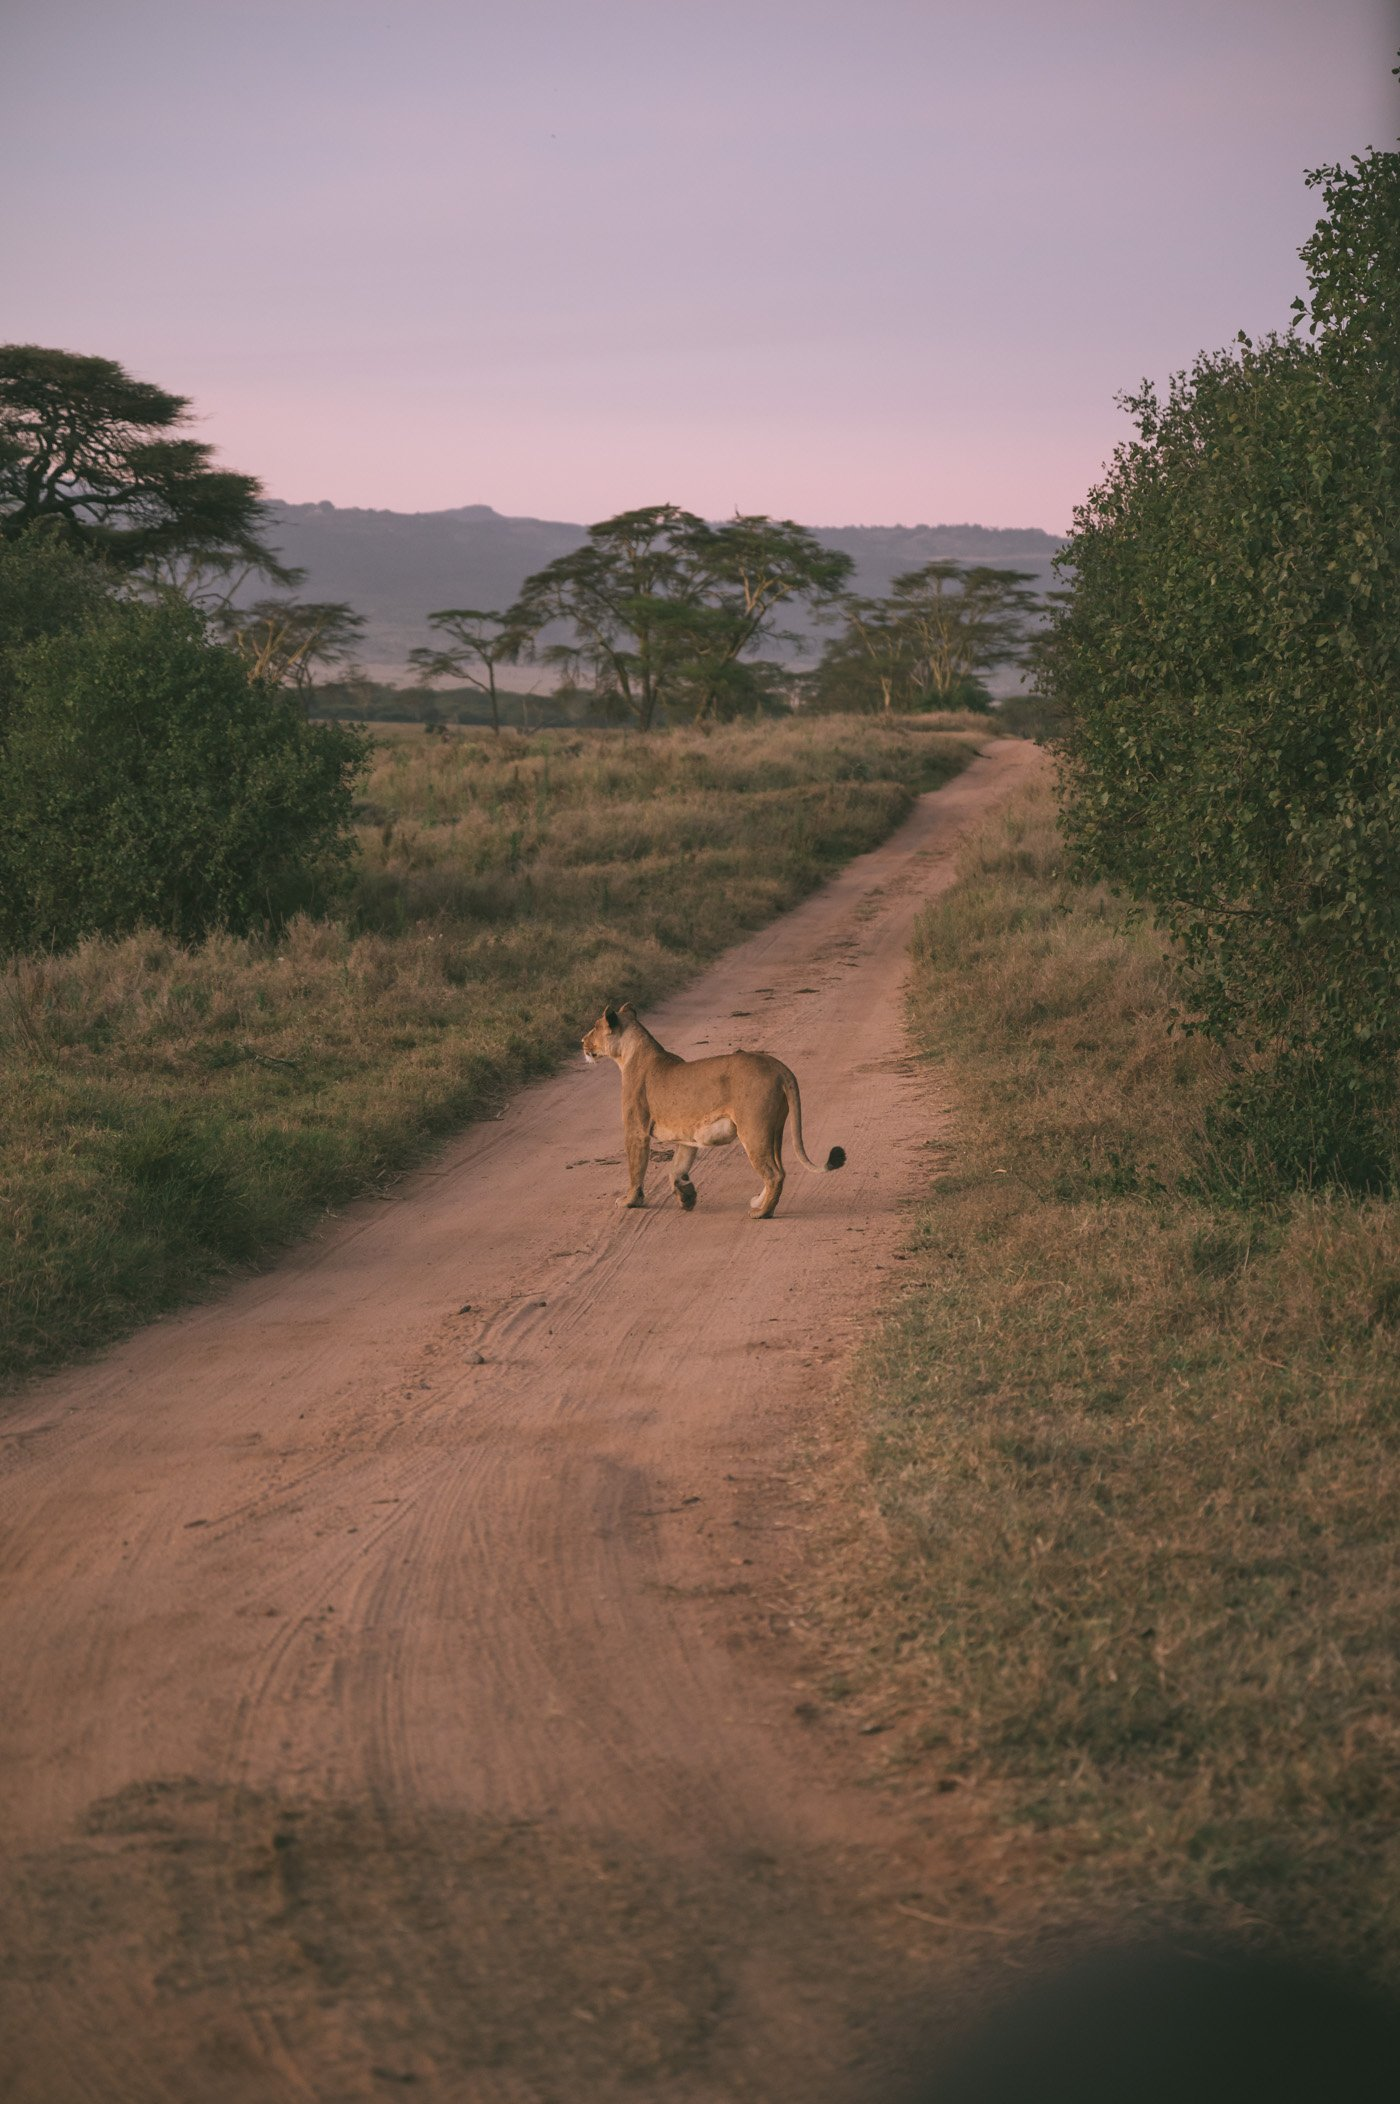 Lioness crossing the street shortly before sunrise at Lewa Wildlife Conservancy Kenya